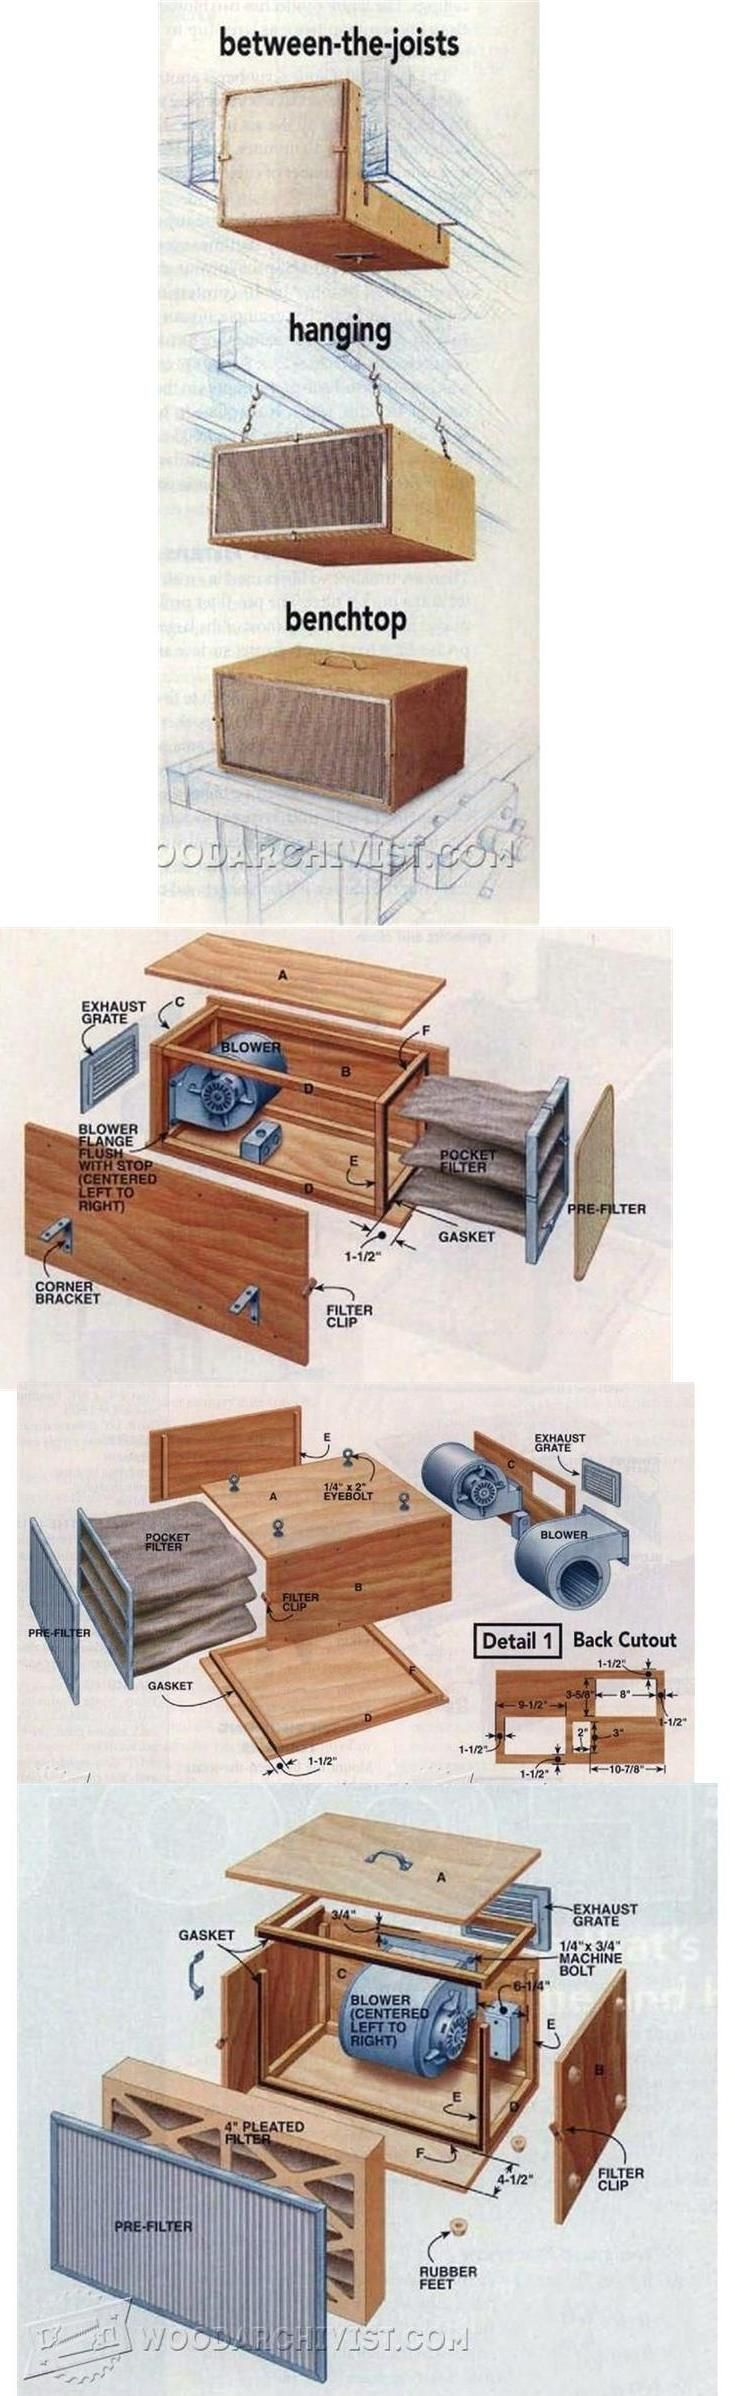 336 Best Opslagstavlen Images On Pinterest Carpentry Wood Simple Moonshine Still Diagram Diy Air Scrubber Dust Collection Tips Jigs And Fixtures Woodwork Woodworking Plans Projects